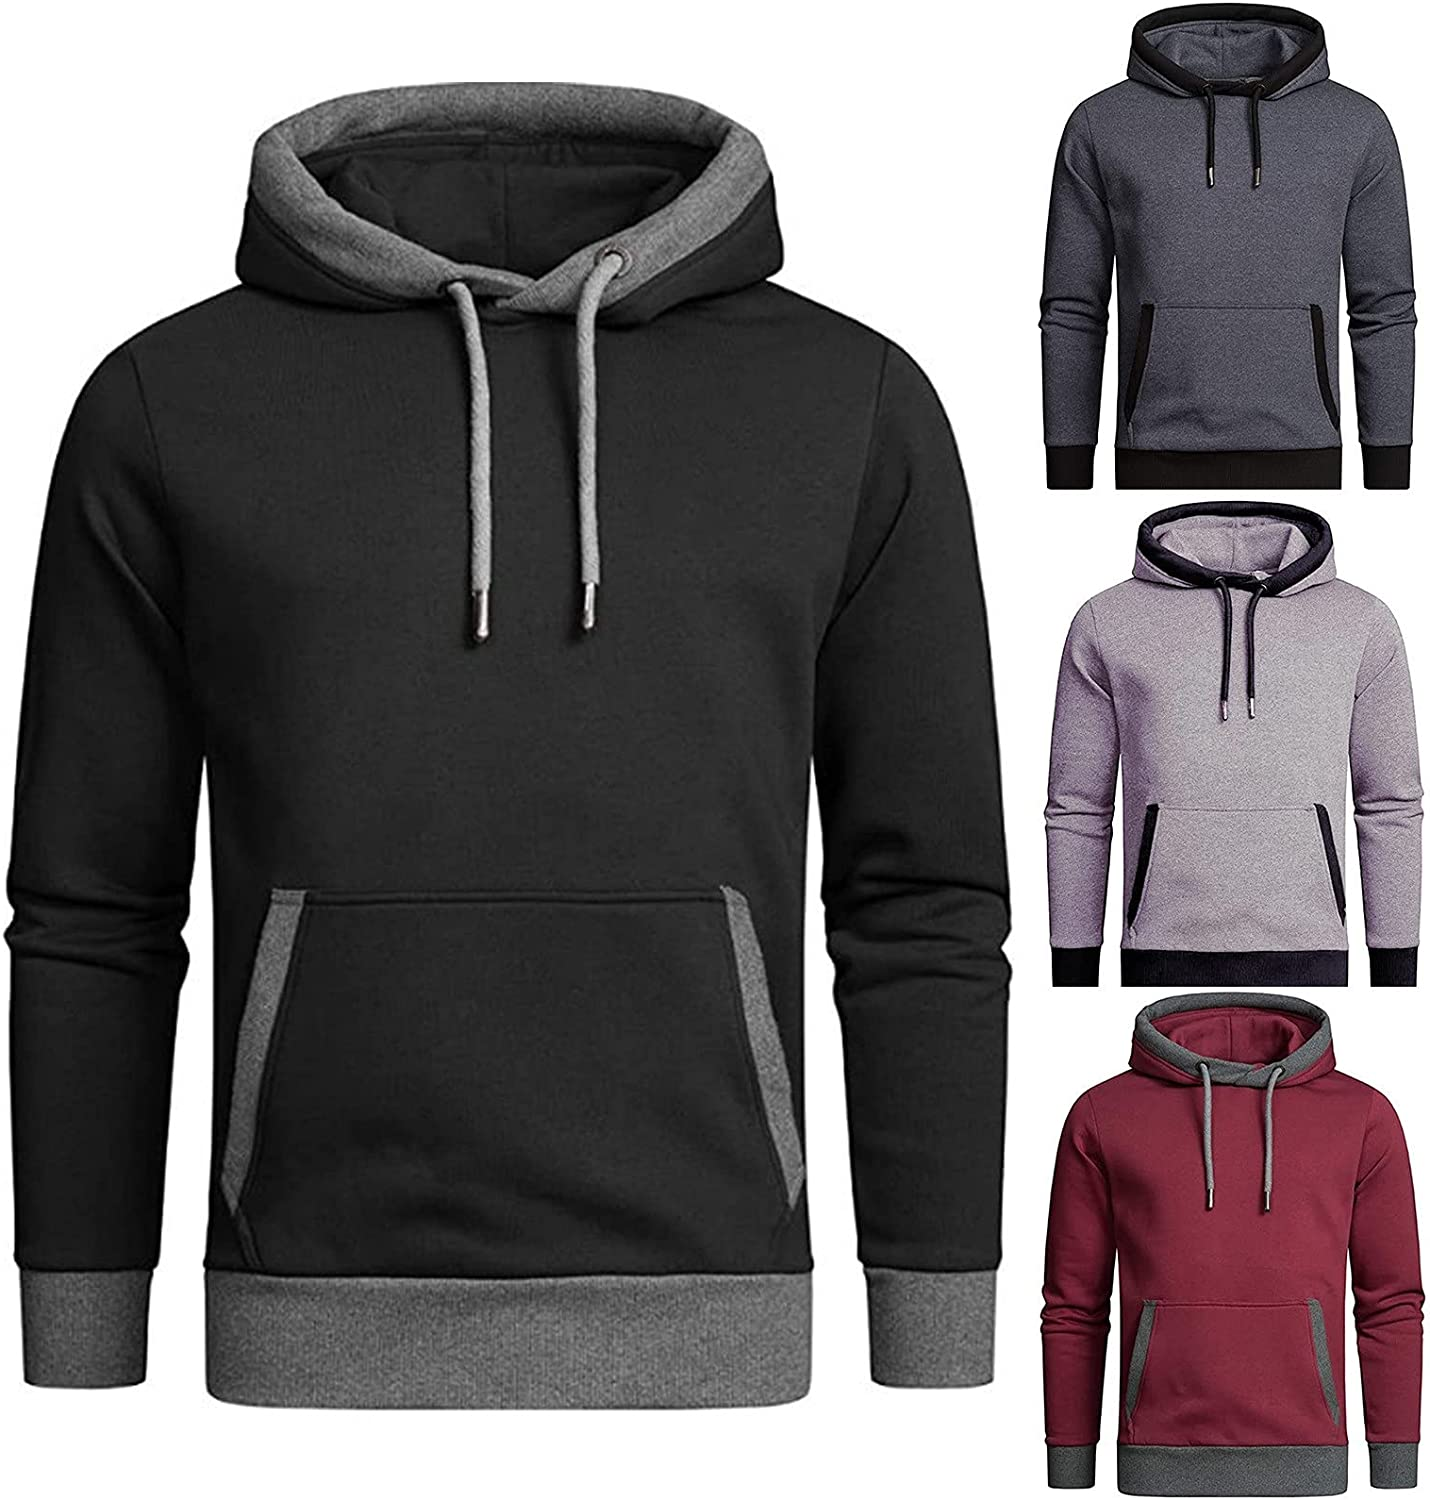 Men's Solid Color Casual Long Sleeved Fashion Sports Pullover Top